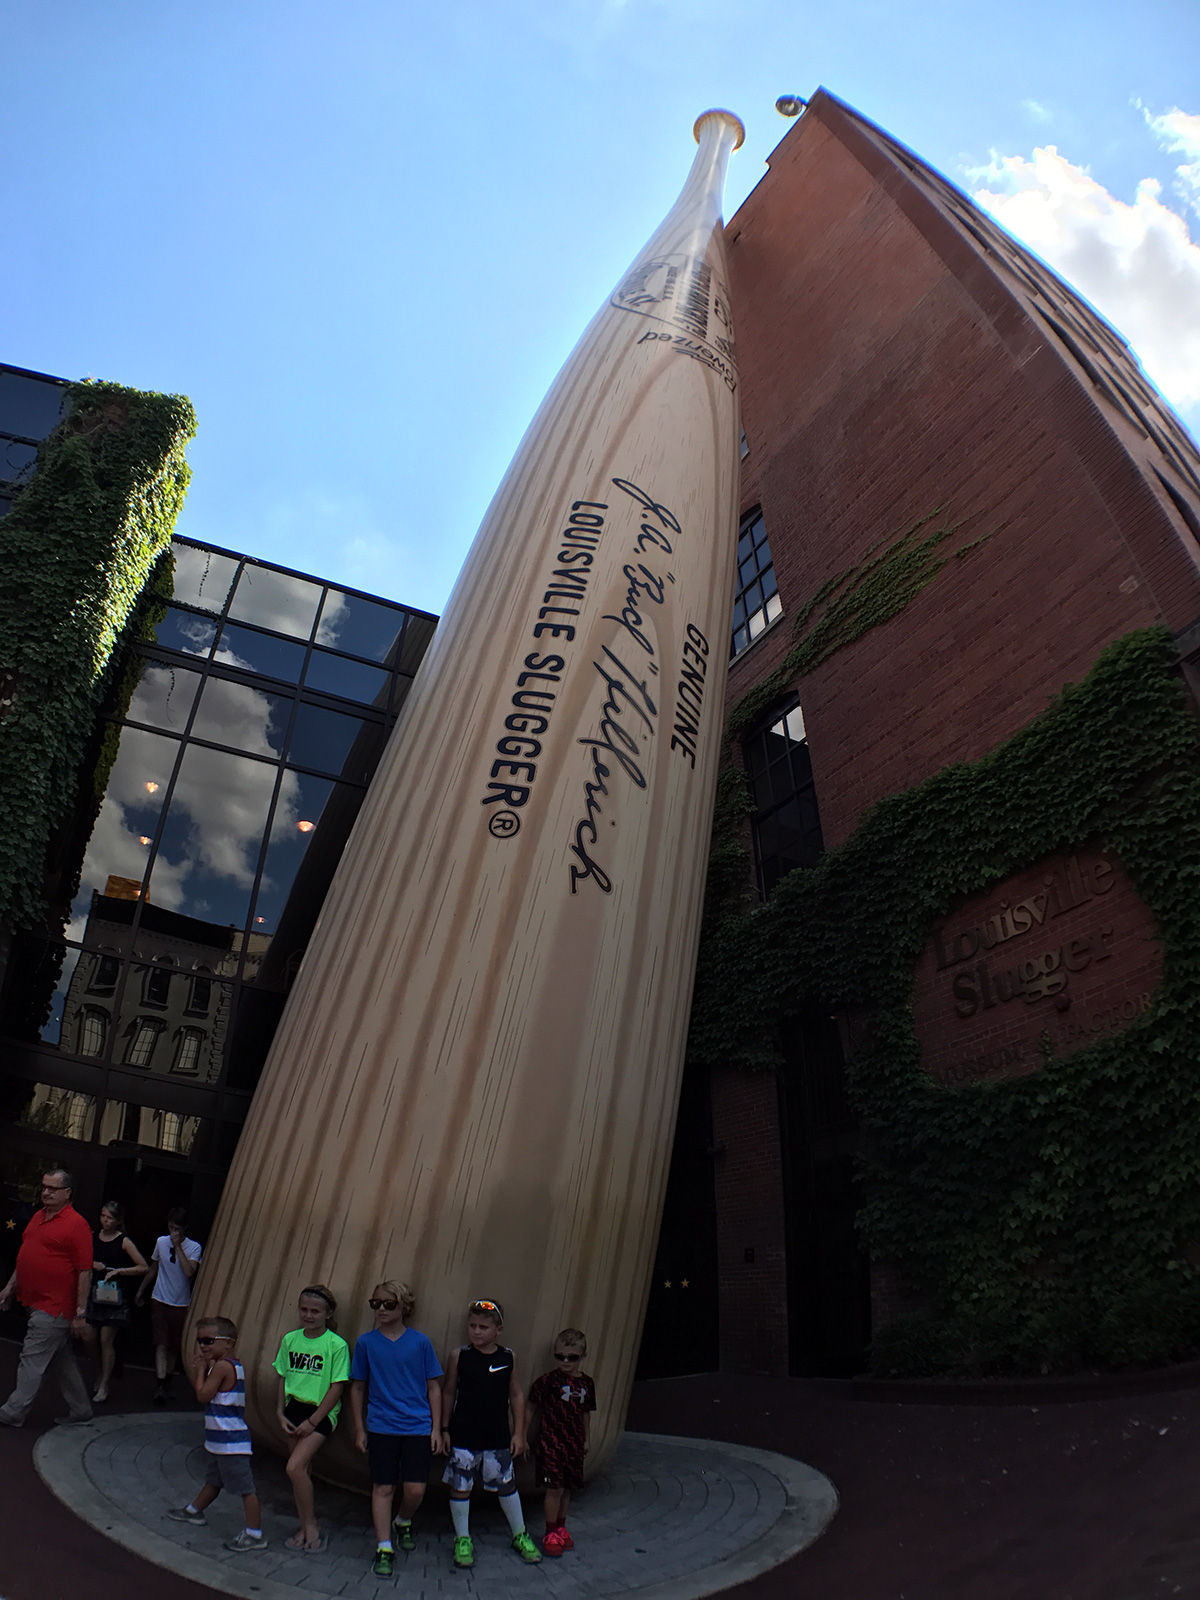 Louisville Slugger Museum & Factory in Louisville, KY by Jets Like Taxis